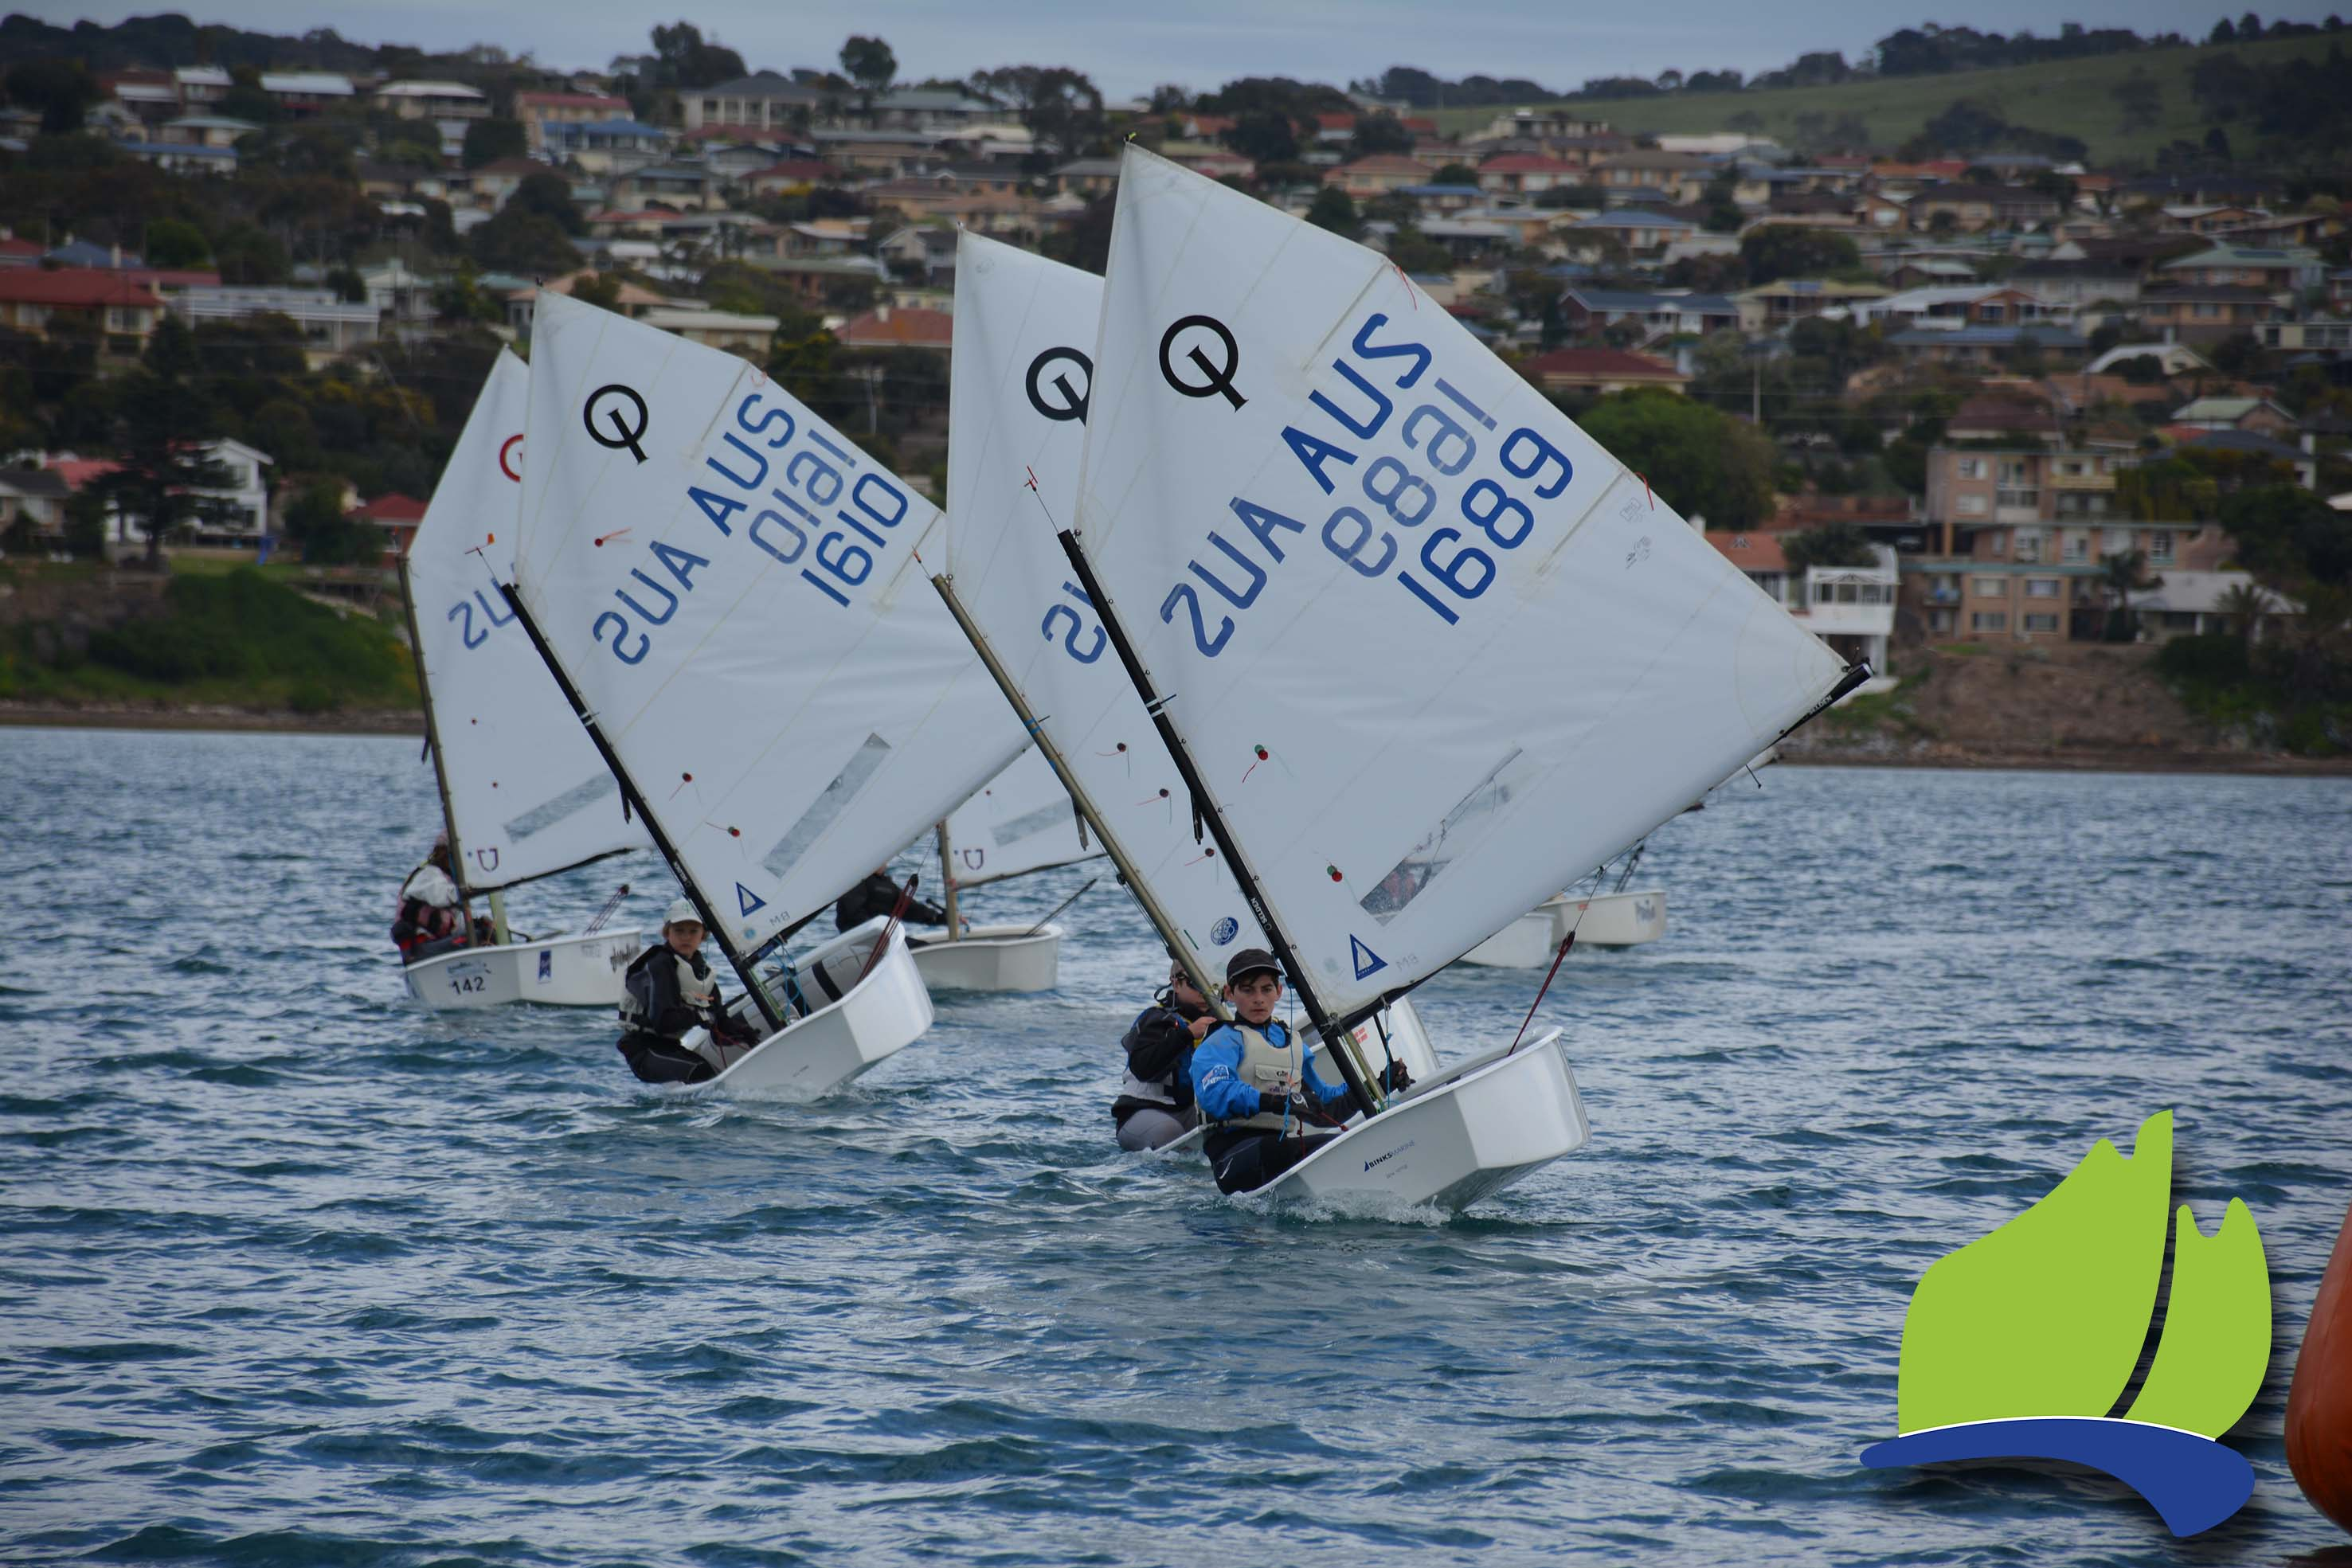 Alexi Wigglesworth leading the fleet in one of the optimist races.